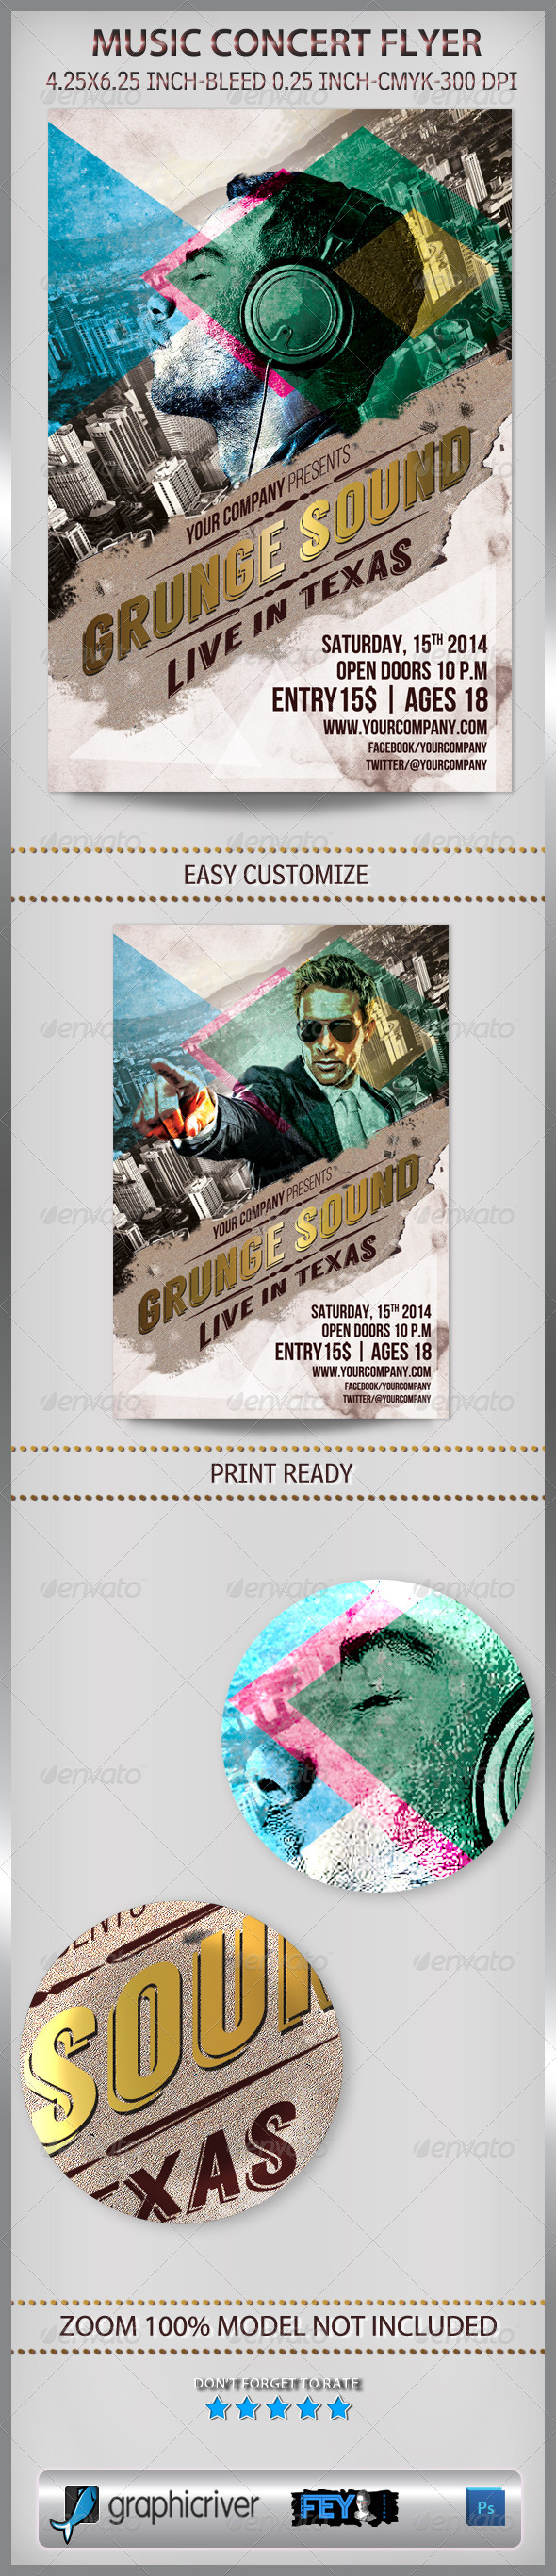 Music Concert Flyer - Events Flyers